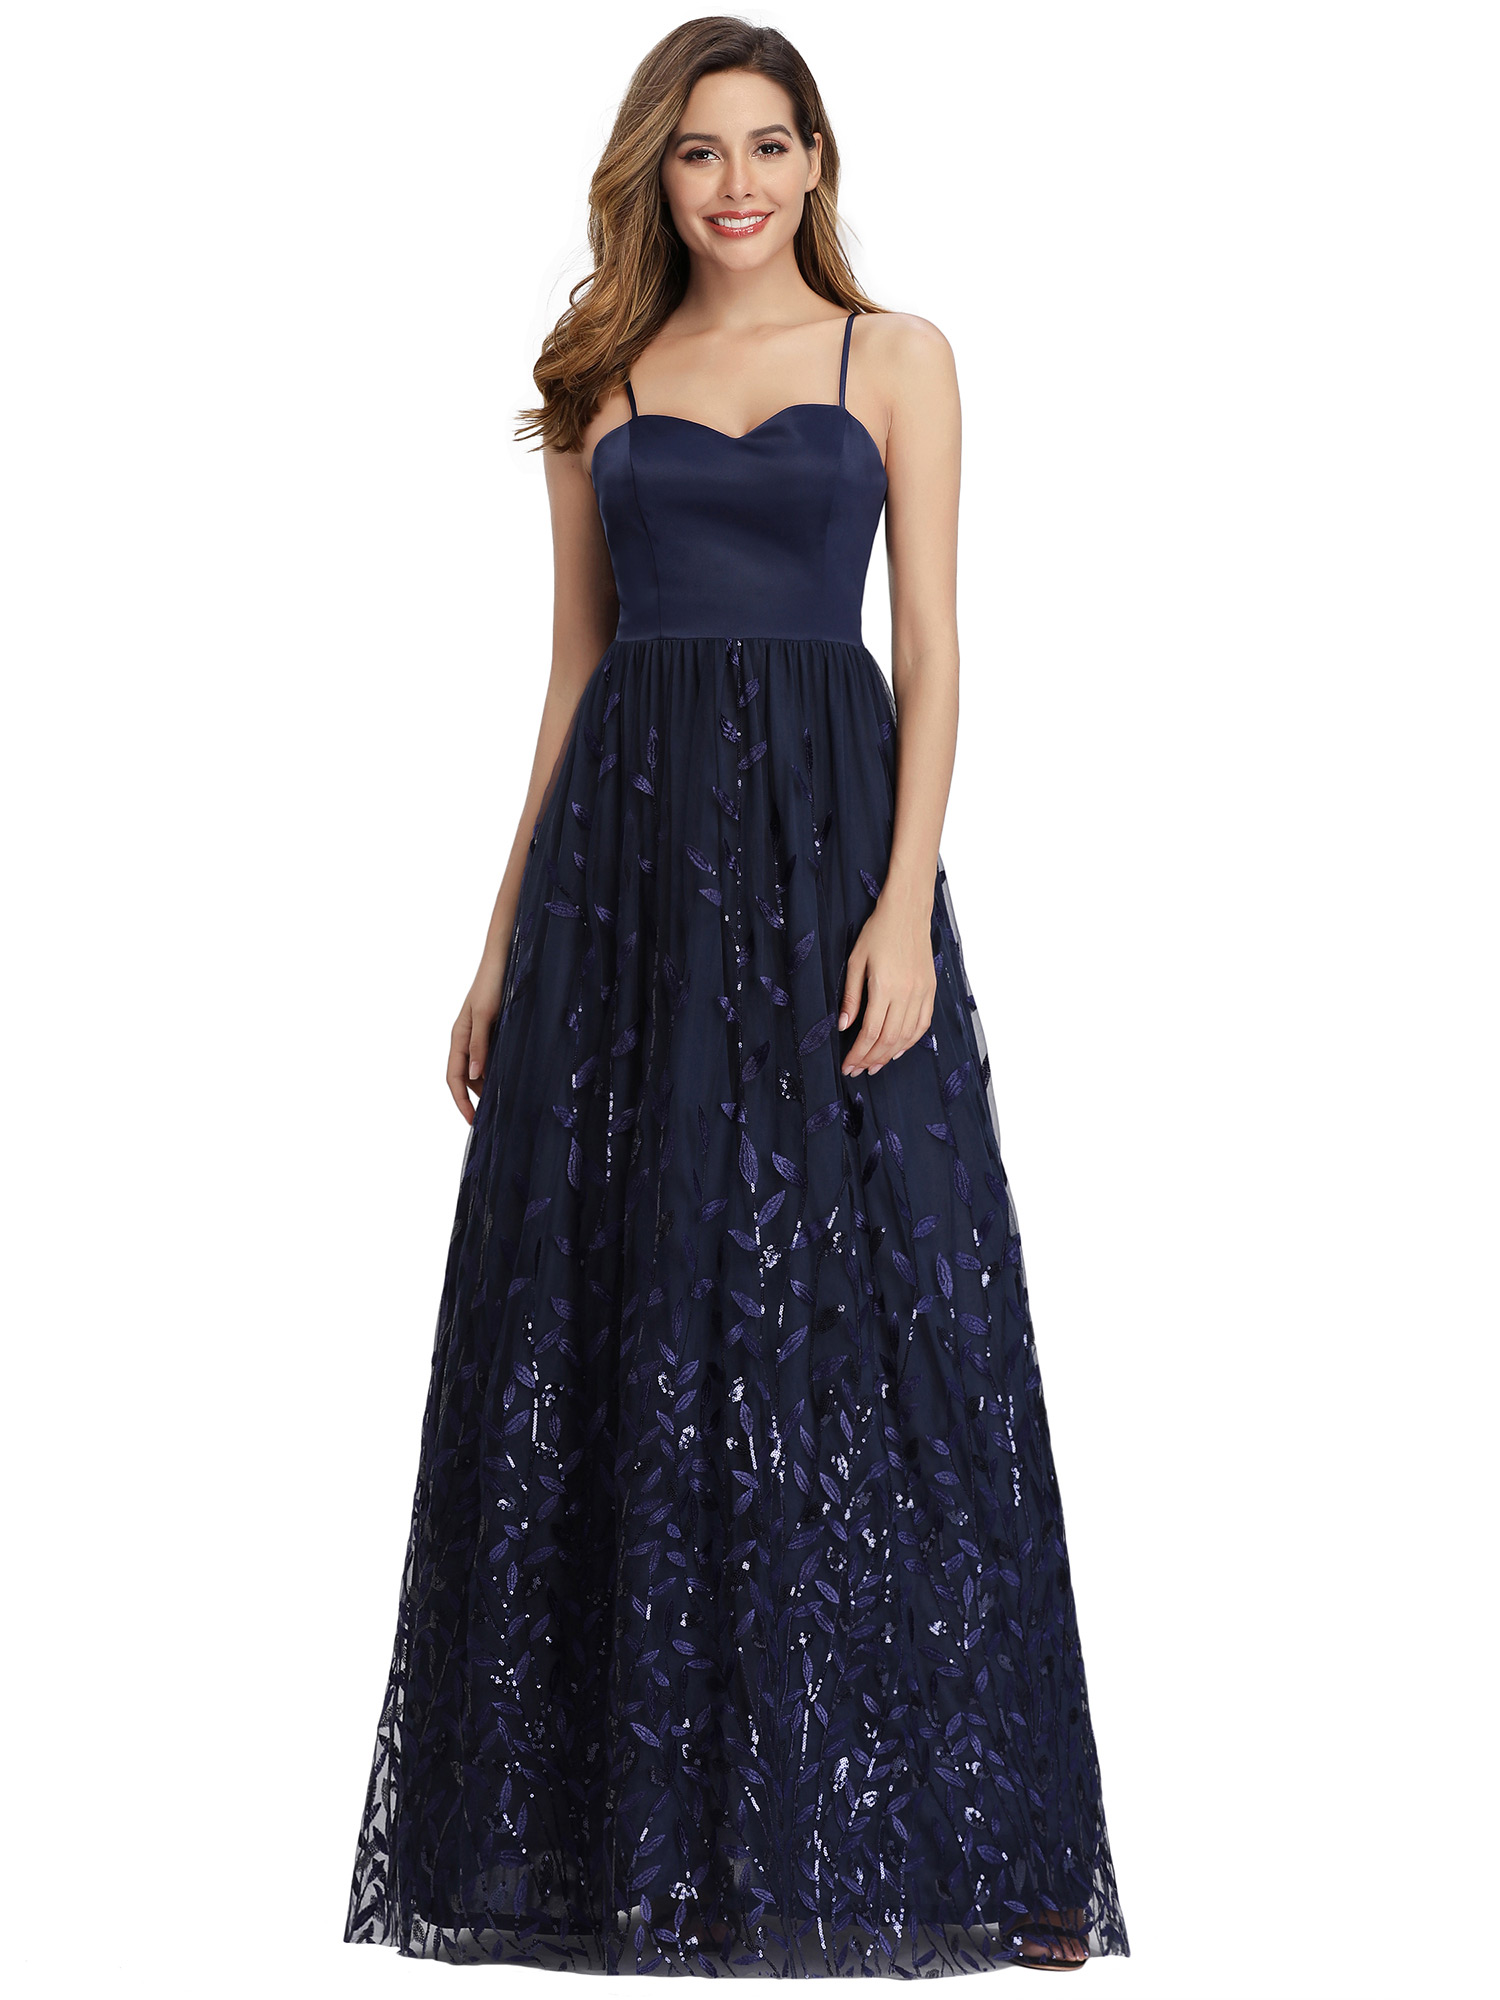 Ever-pretty-Women-A-line-Formal-Cocktail-Party-Dresses-Homecoming-Evening-Proms thumbnail 4